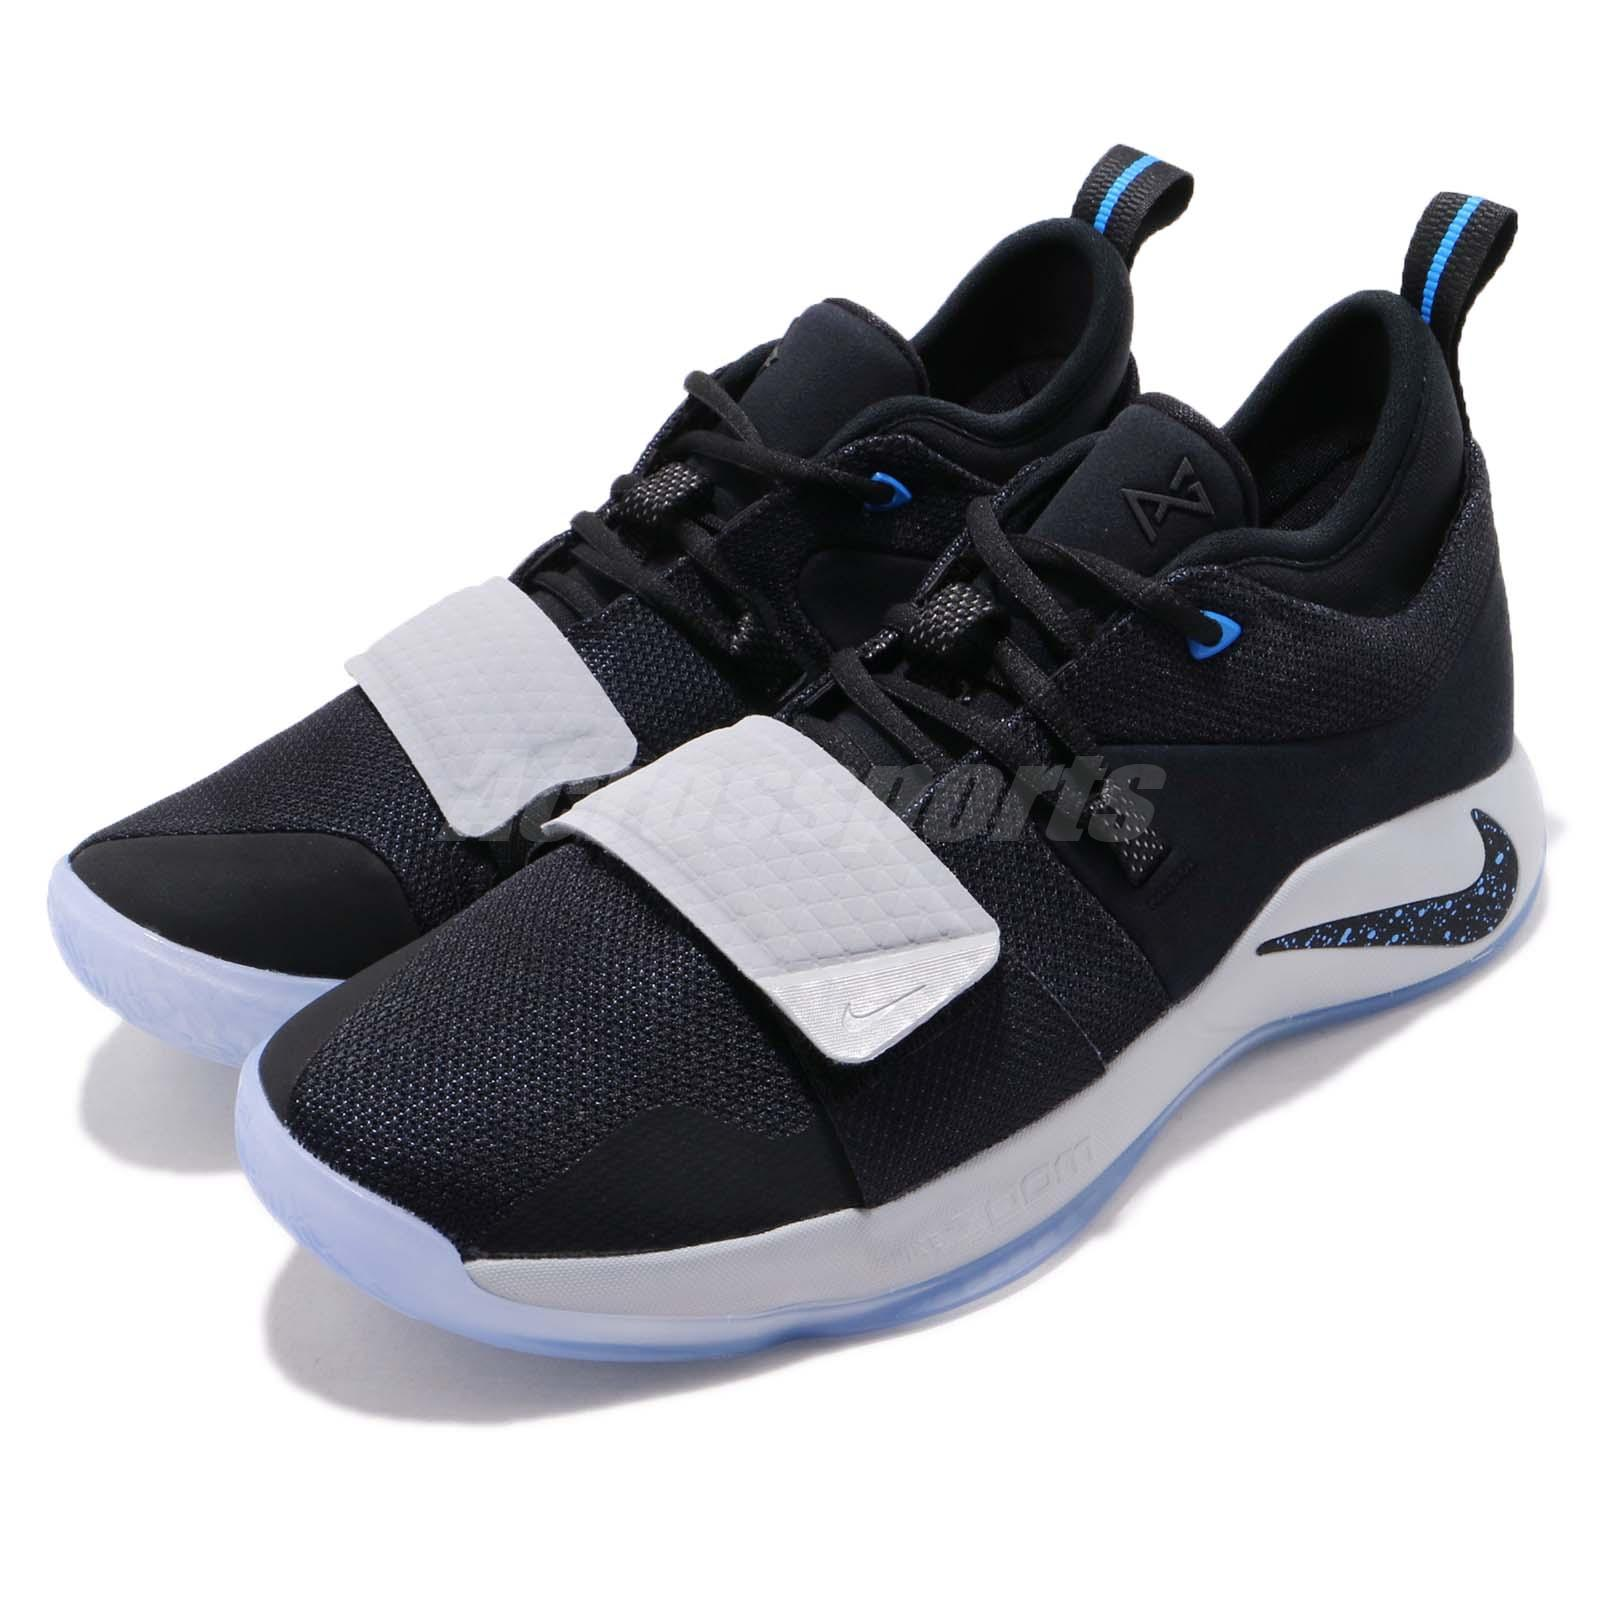 6758dd3ac7e7 Details about Nike PG 2.5 EP Black Photo Blue Paul George Mens Basketball  Shoes BQ8453-006